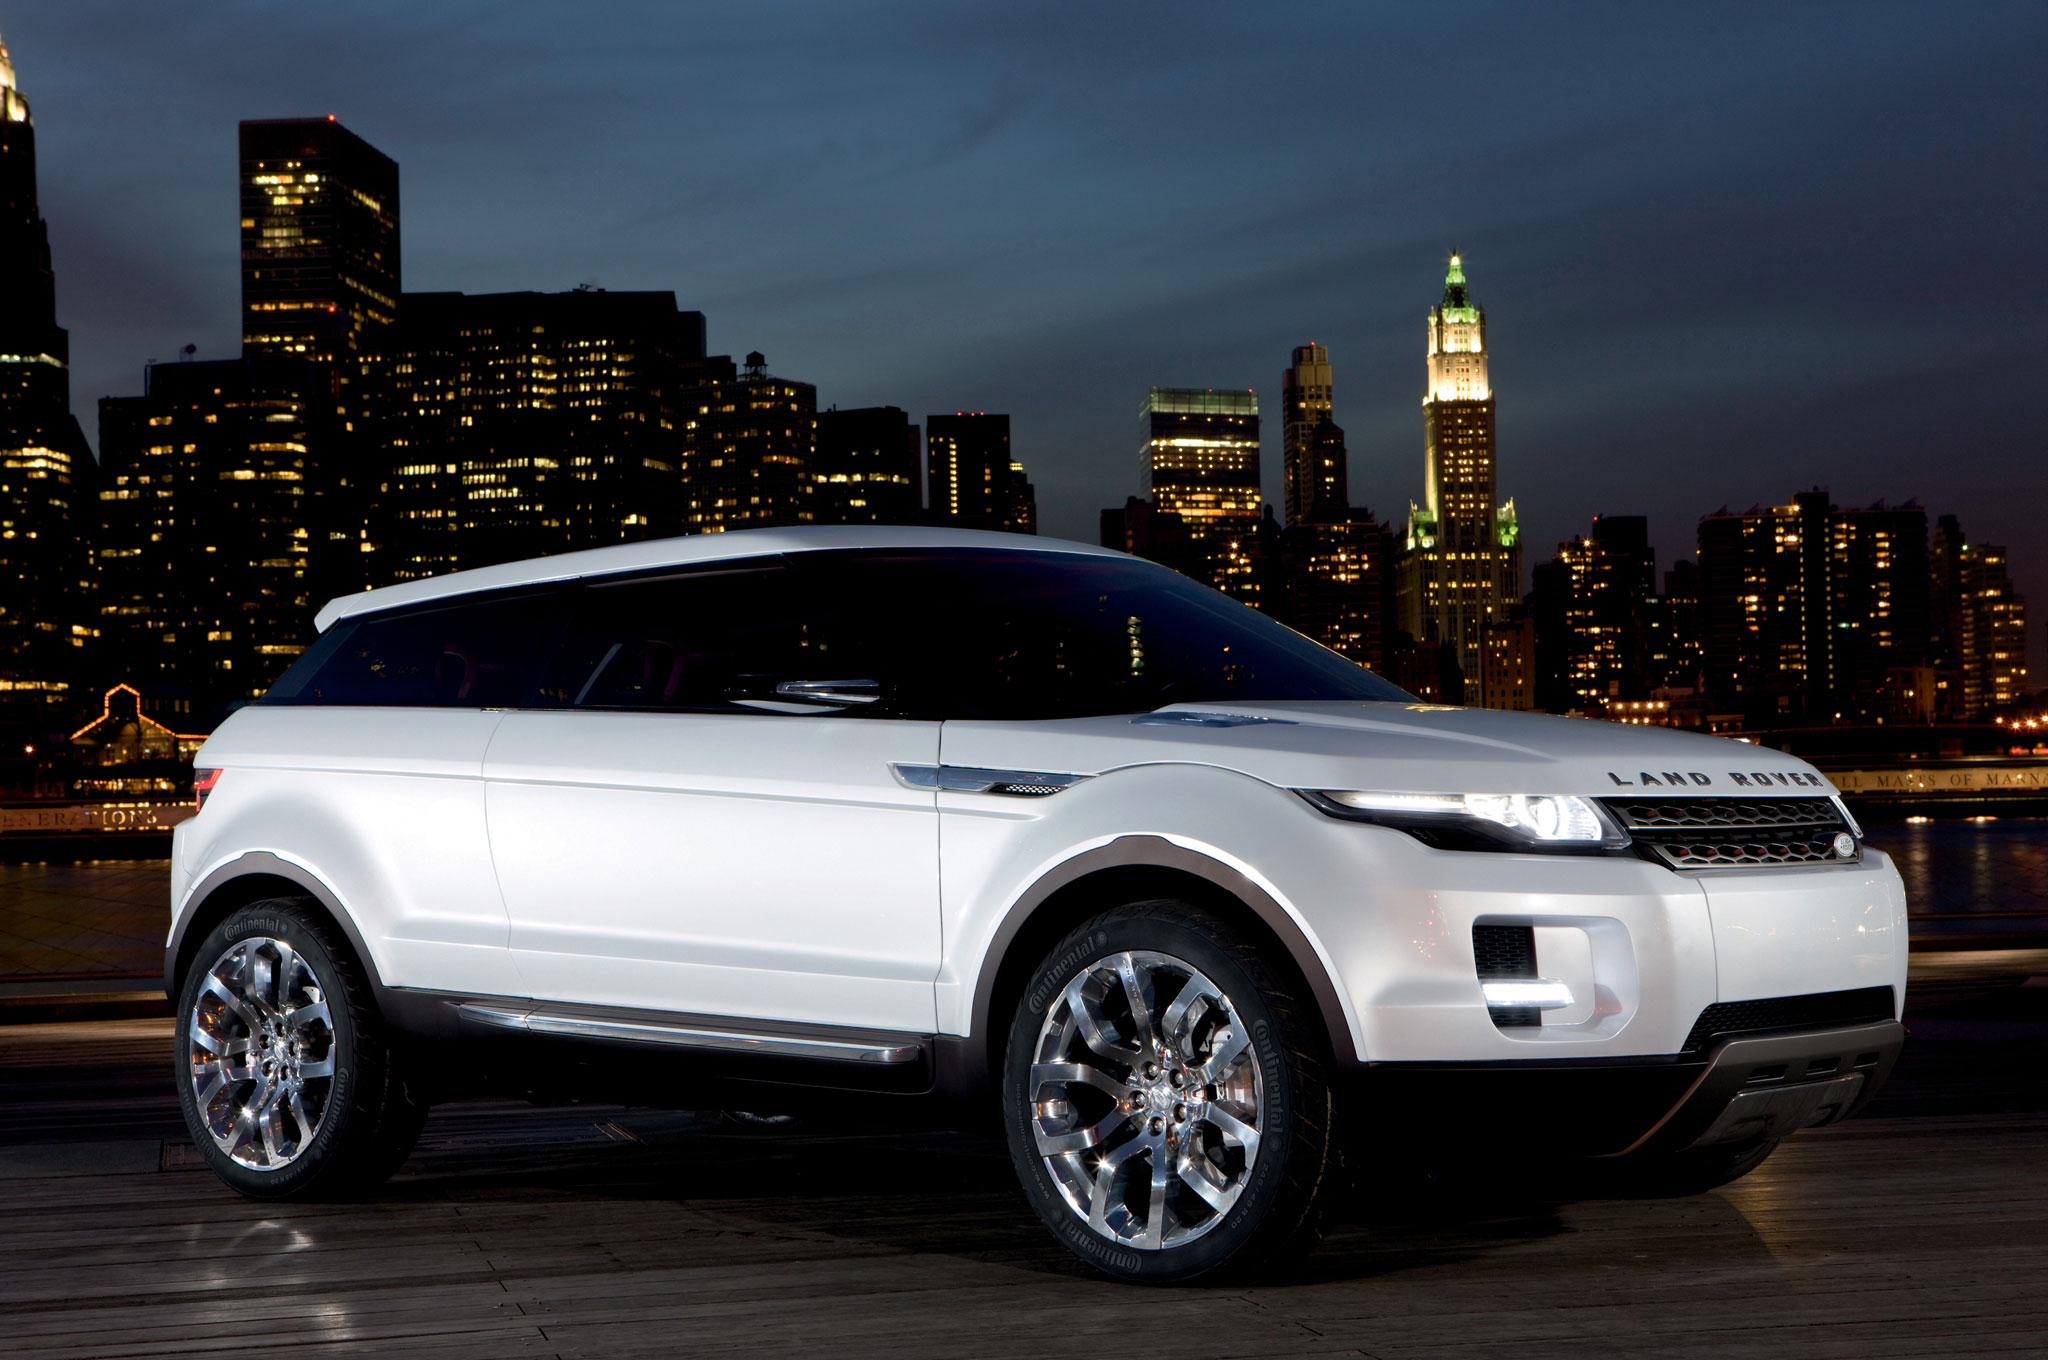 http://st.automobilemag.com/uploads/sites/11/2013/07/2012-Land-Rover-Range-Rover-Evoque-front-right-side-view.jpg